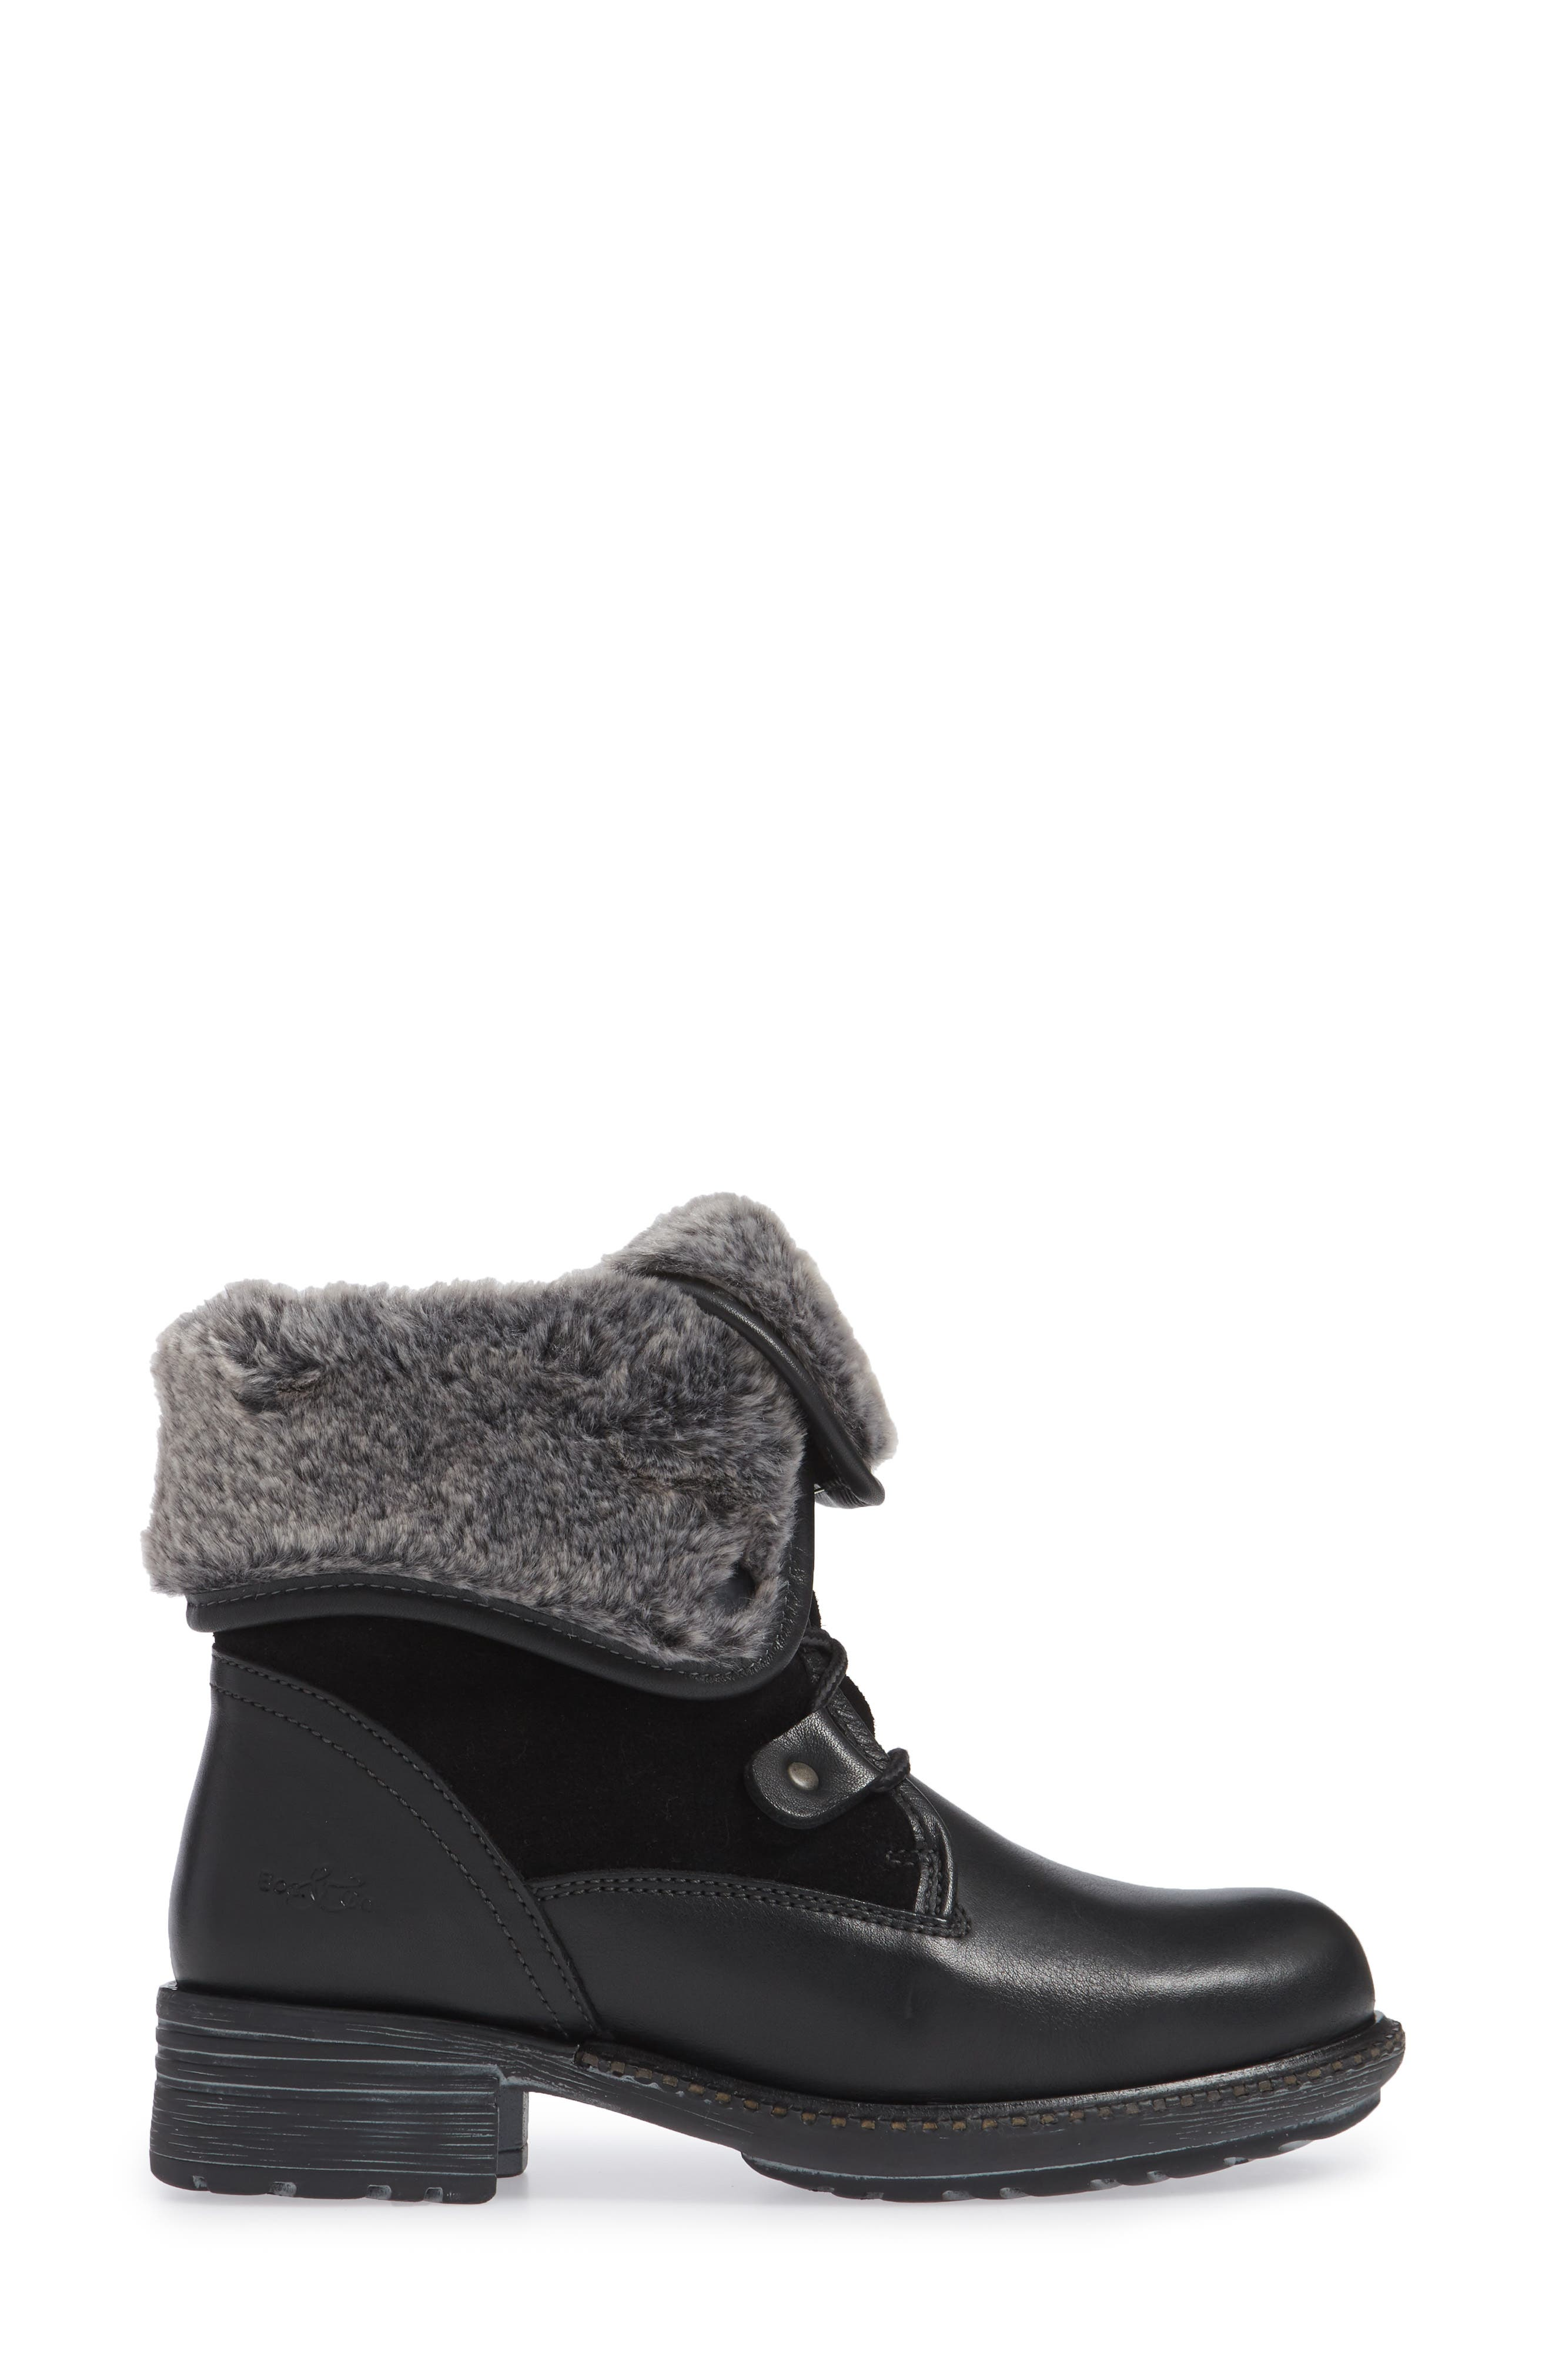 Springfield Waterproof Winter Boot,                             Alternate thumbnail 3, color,                             BLACK LEATHER